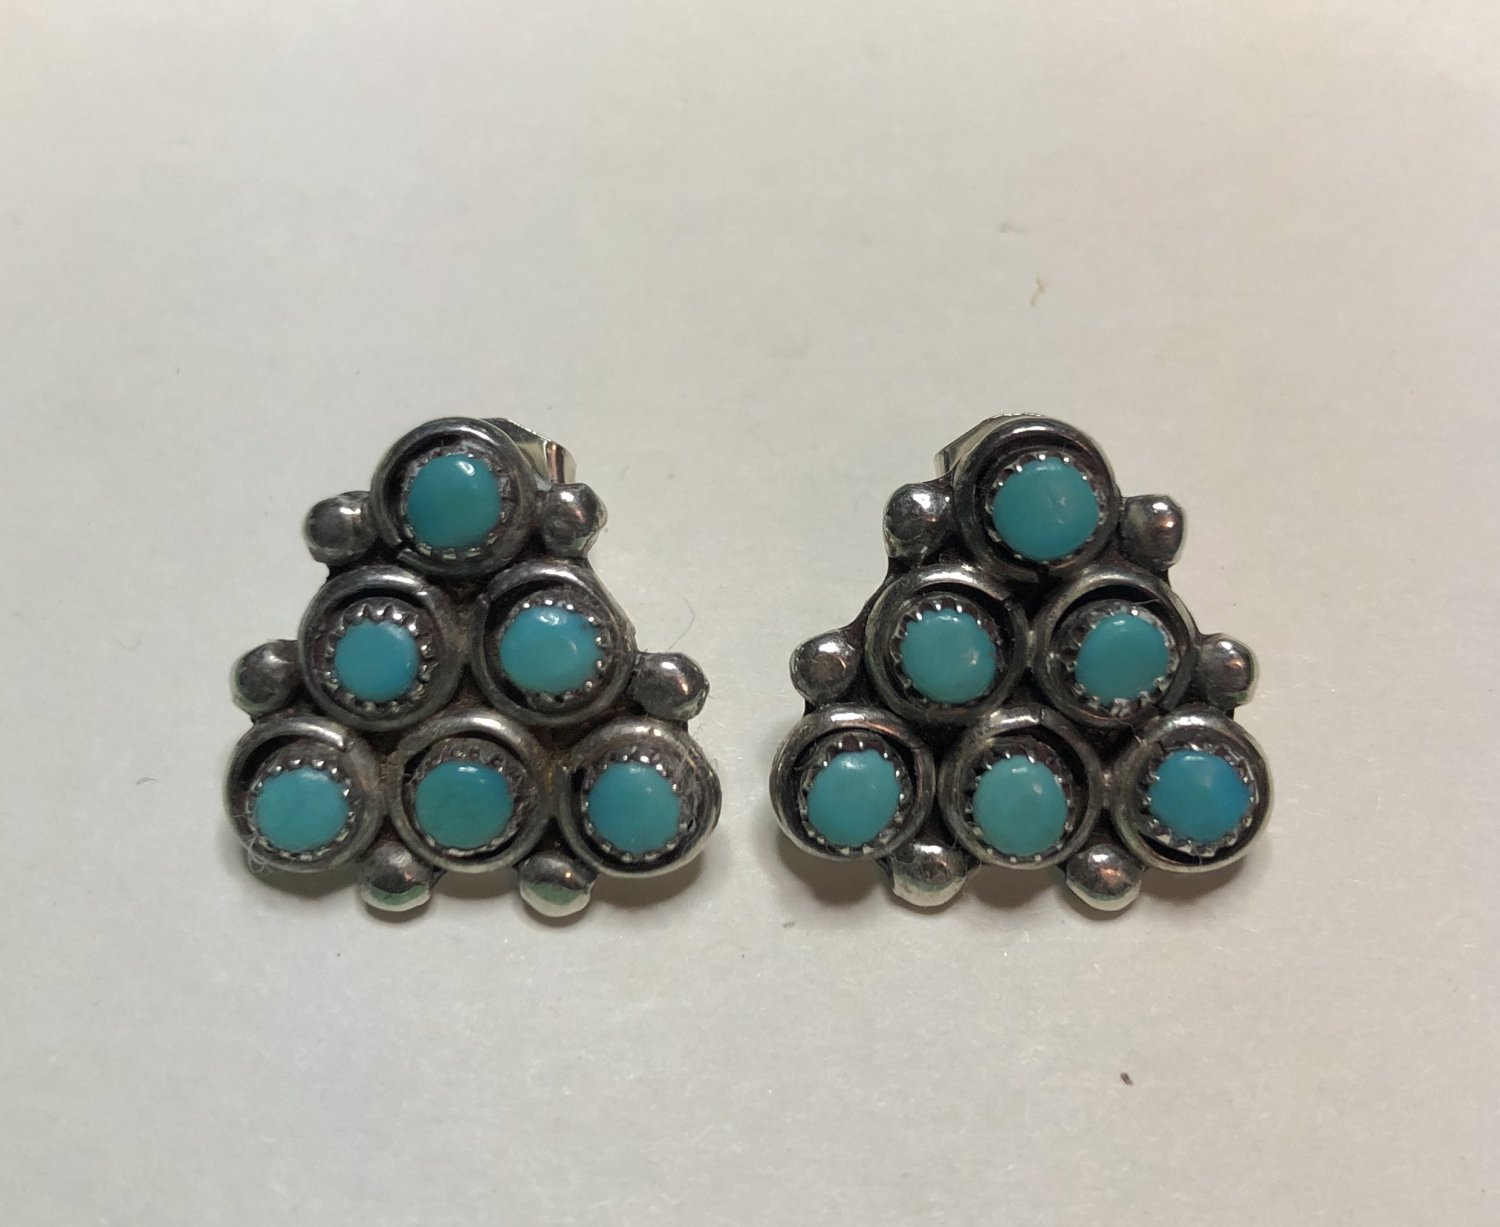 Vintage Artisan Blue Turquoise Pierced Earrings Six Stones Set Pyramid Design in 925 Silver .625 in